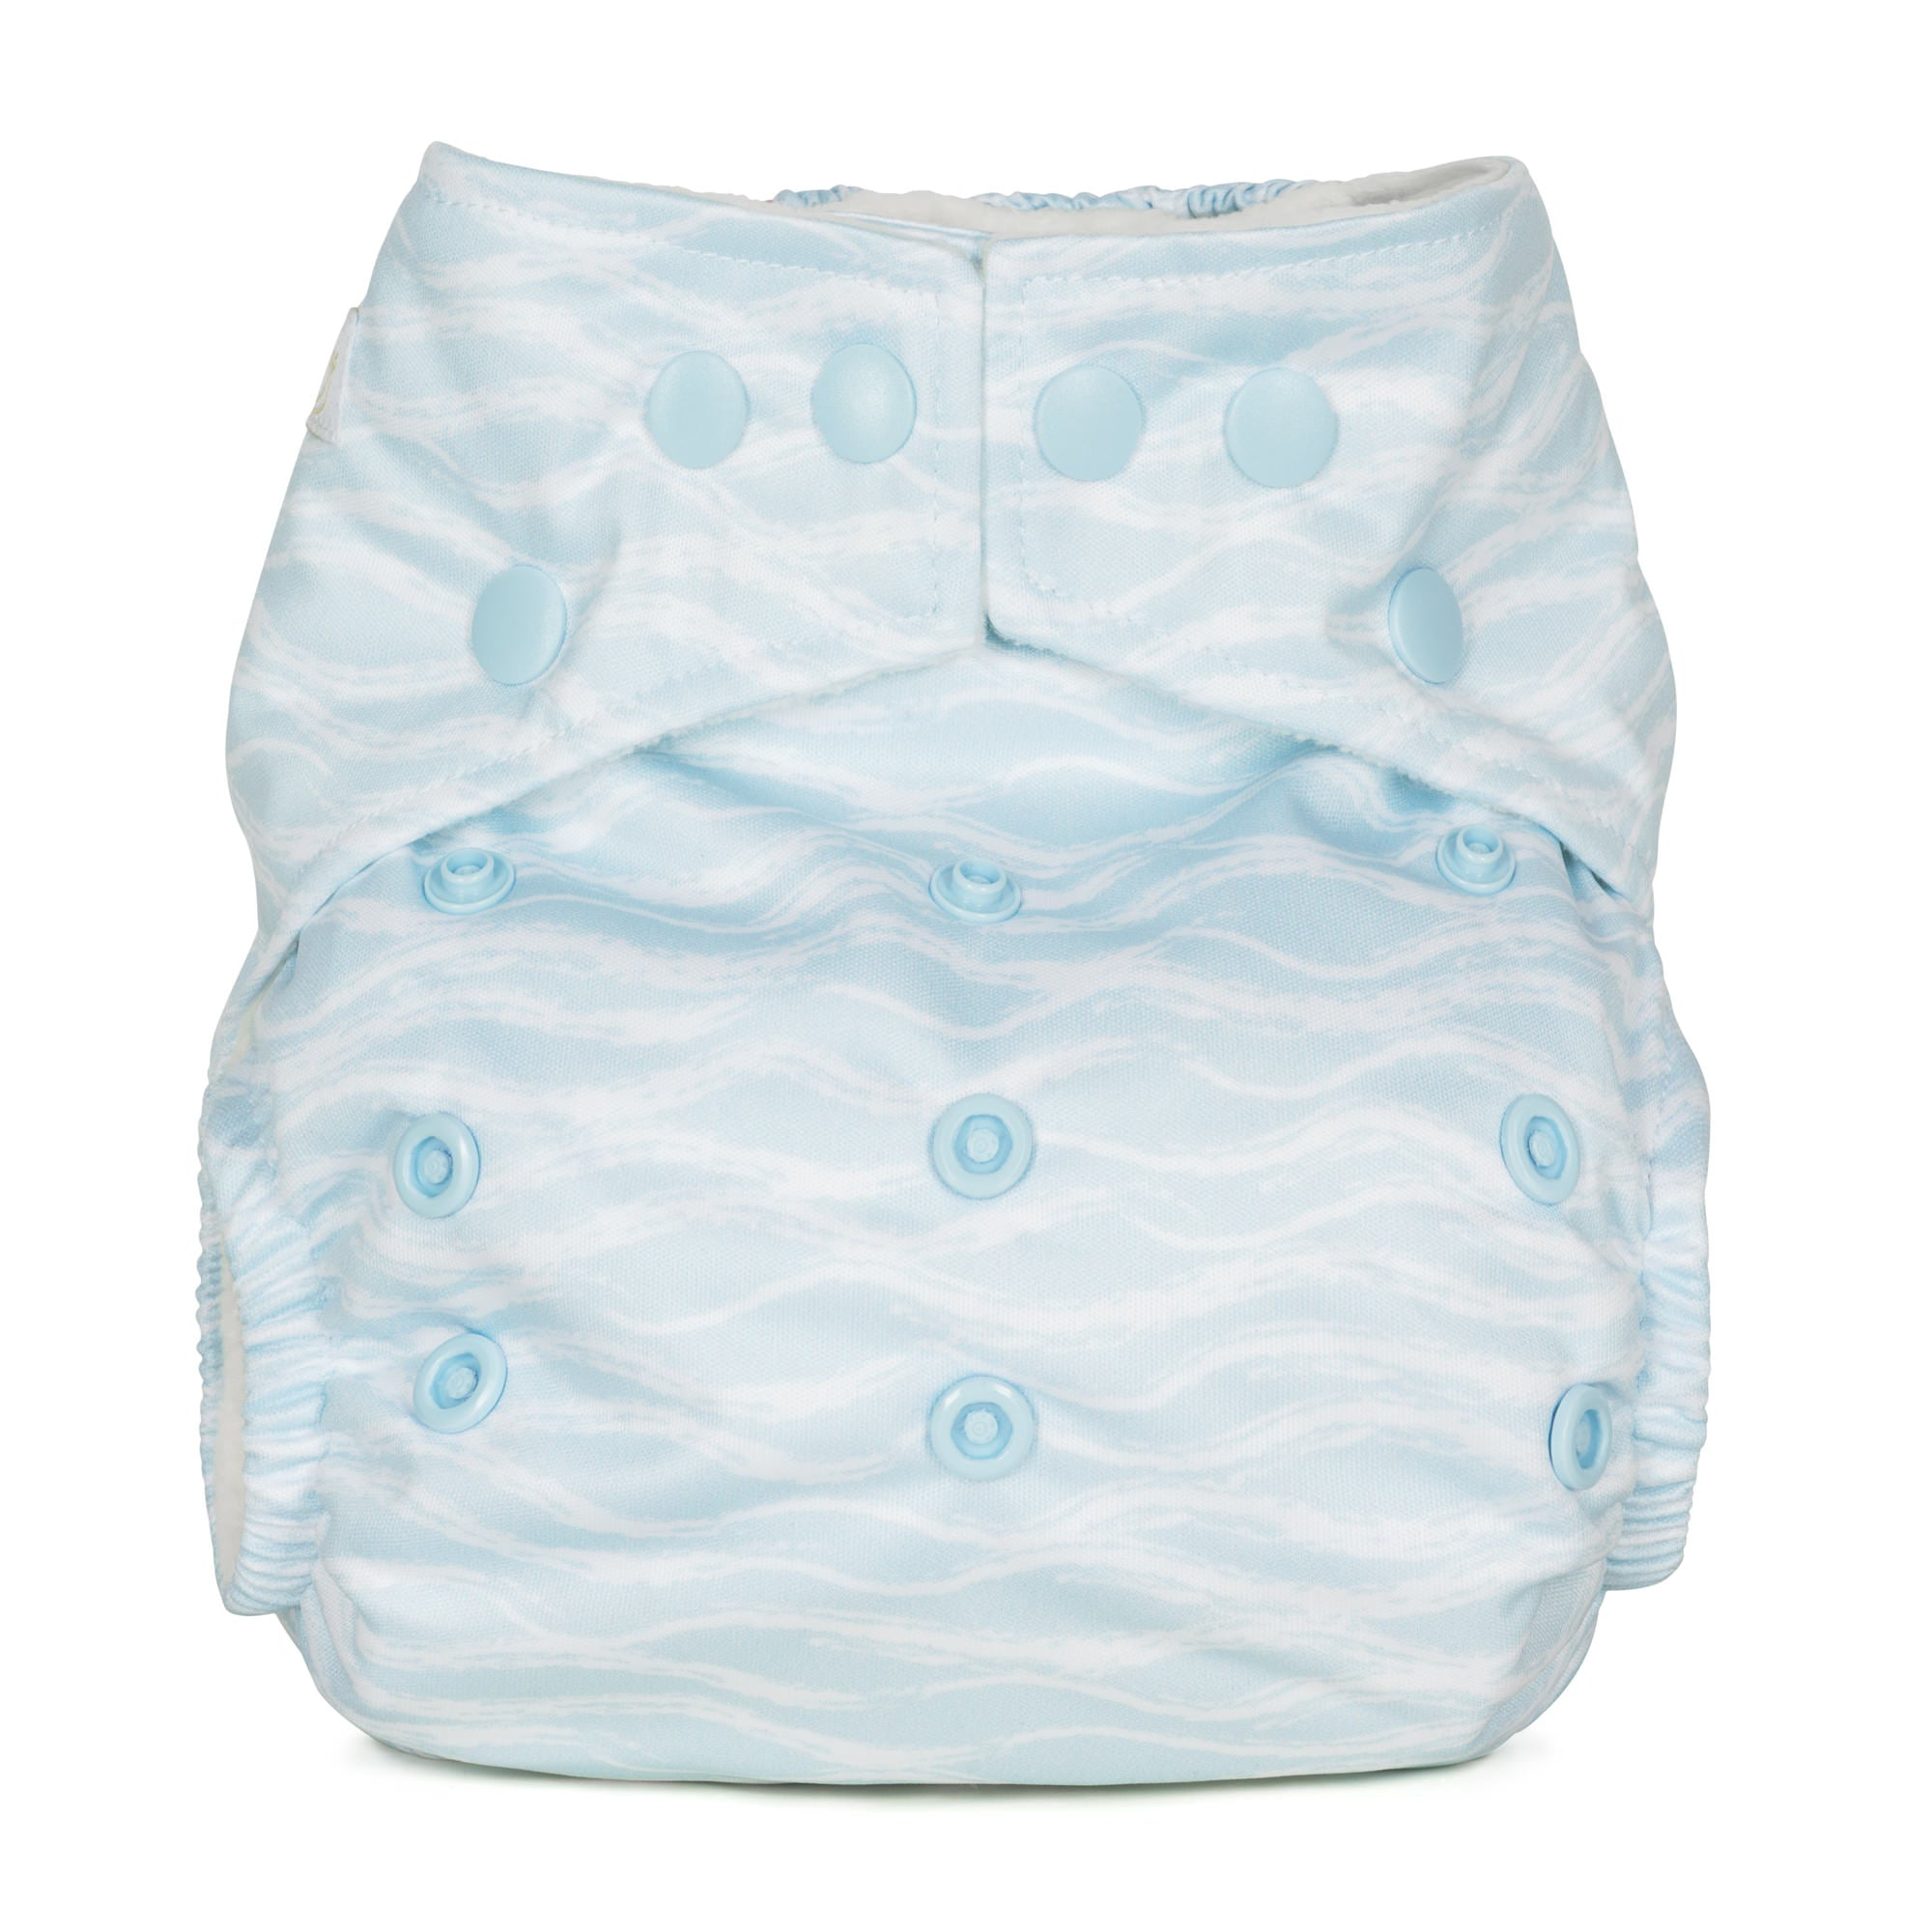 Baba and Boo One Size Pocket Cloth Nappy - Waves